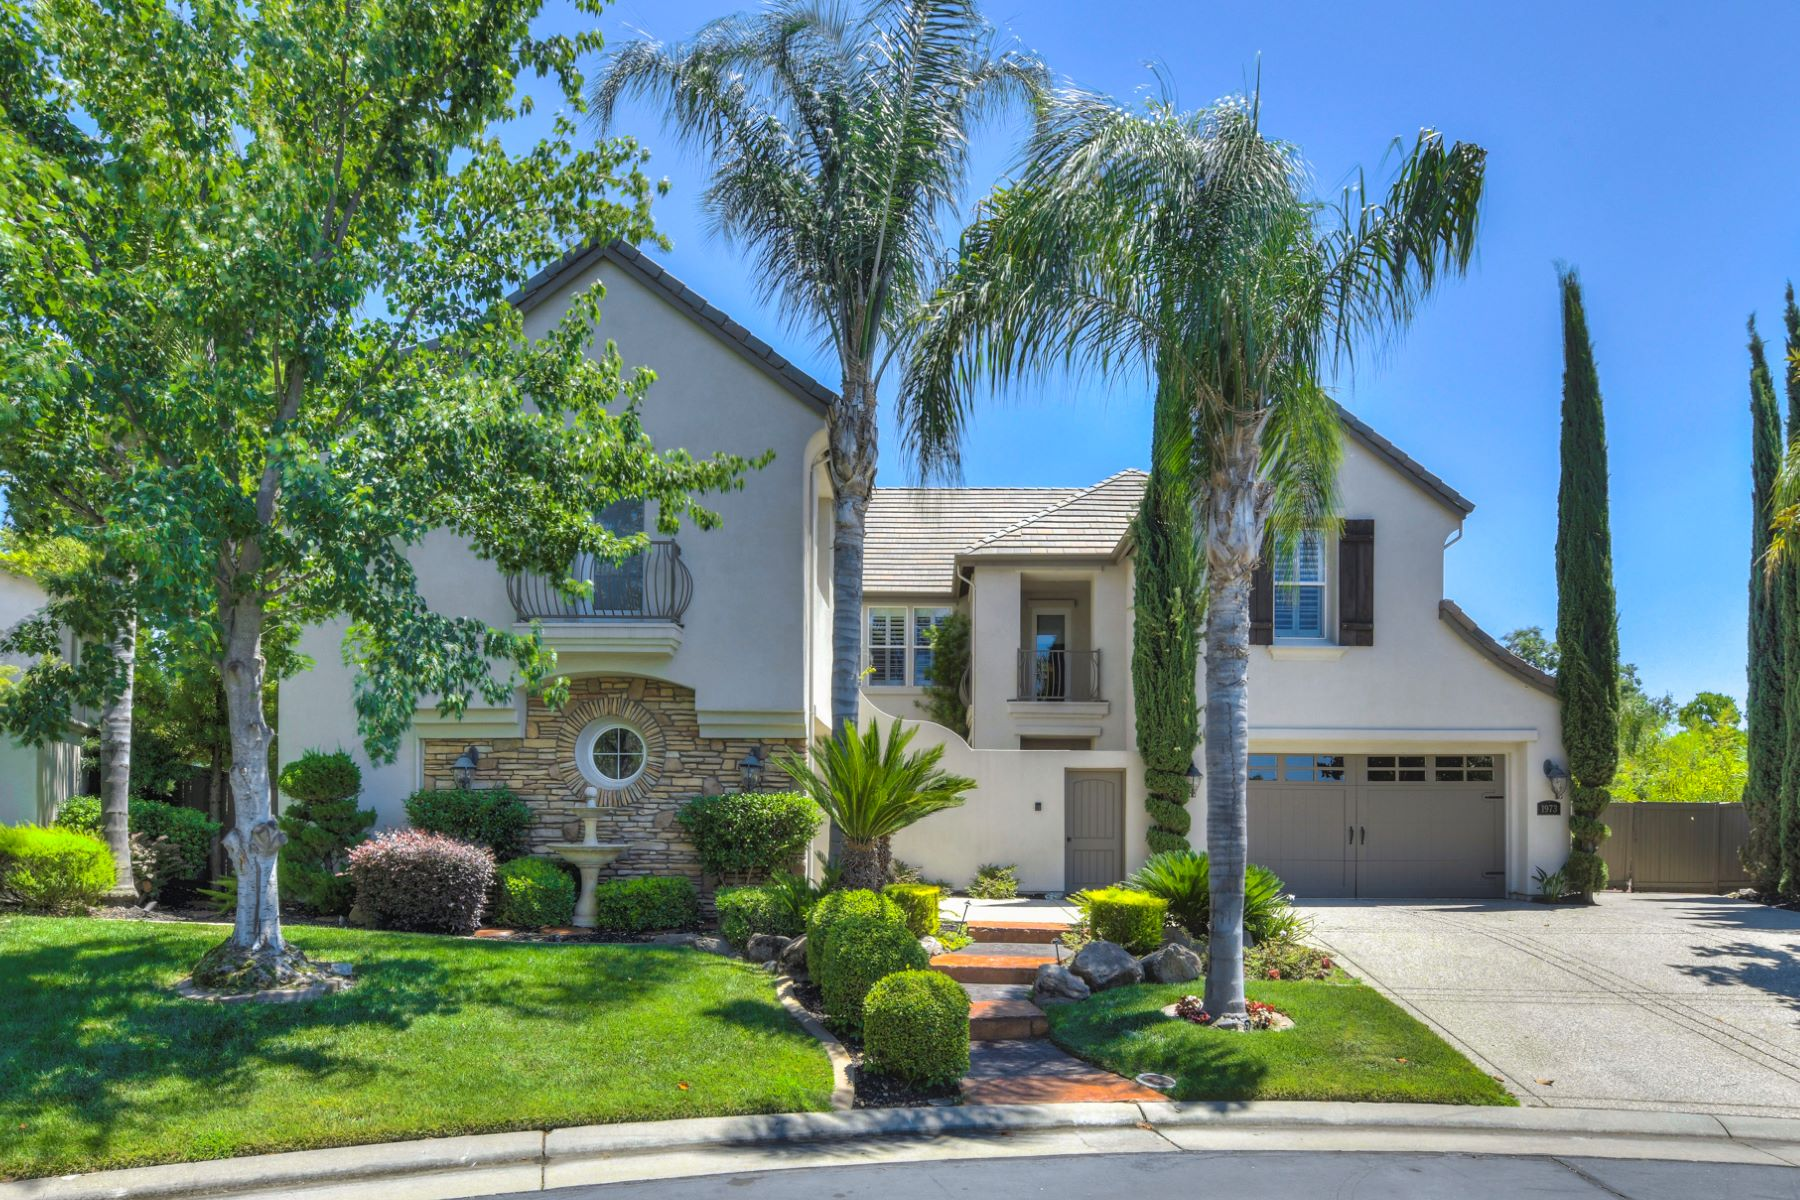 Single Family Home for Active at 1973 Robin Brook Way, Roseville CA 95661 1973 Robin Brook Way Roseville, California 95661 United States